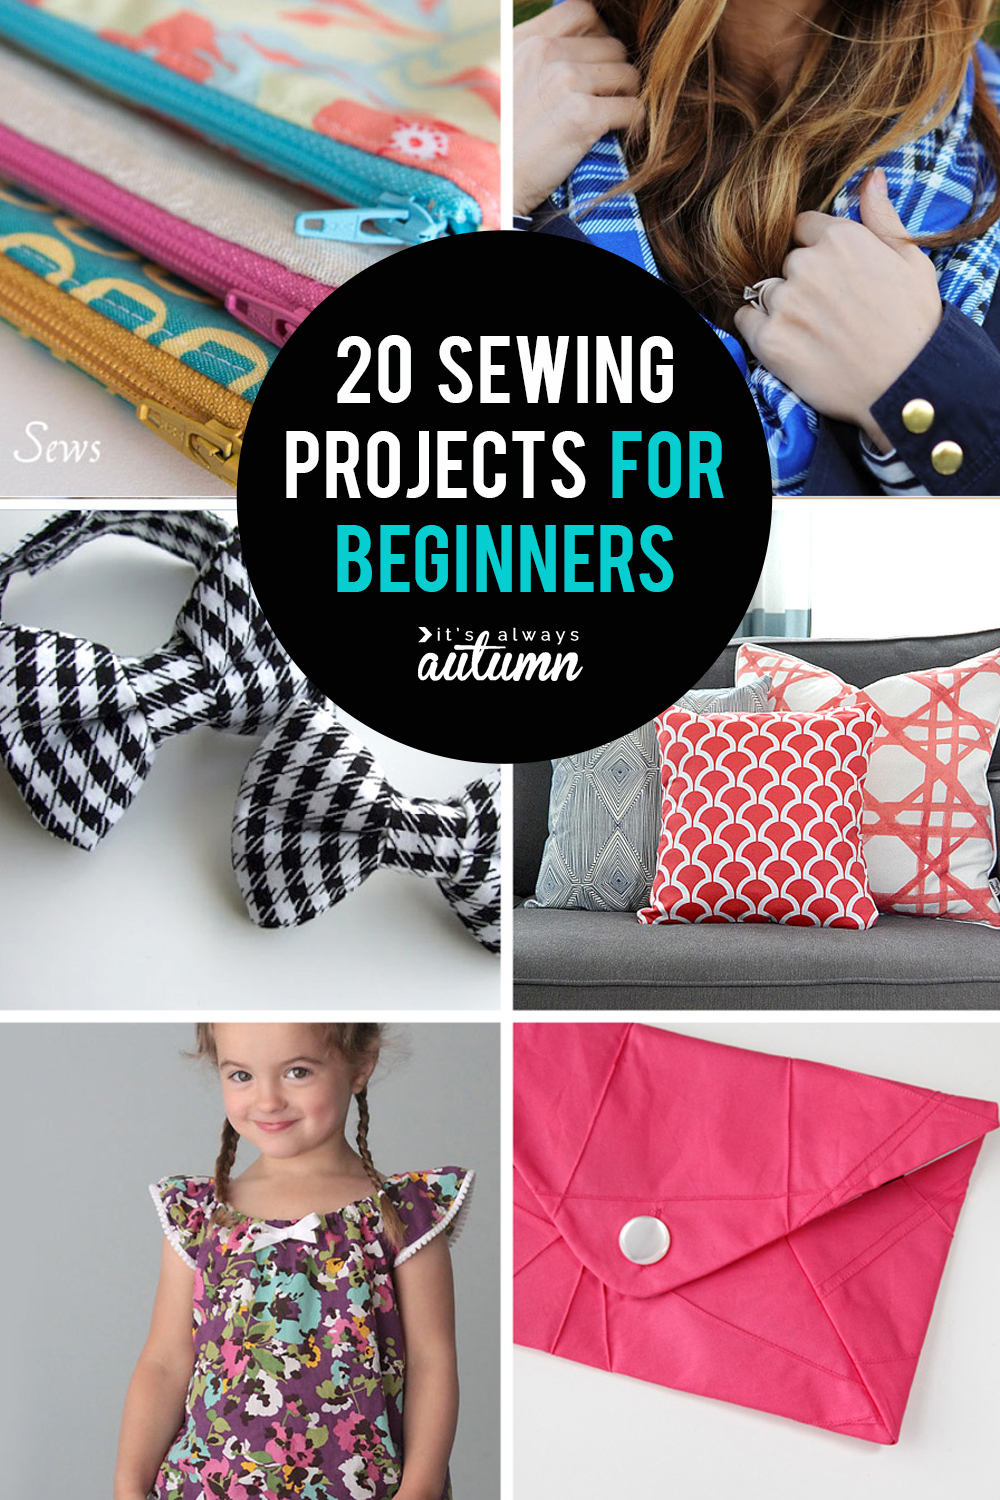 20 easy sewing projects perfect for beginners!